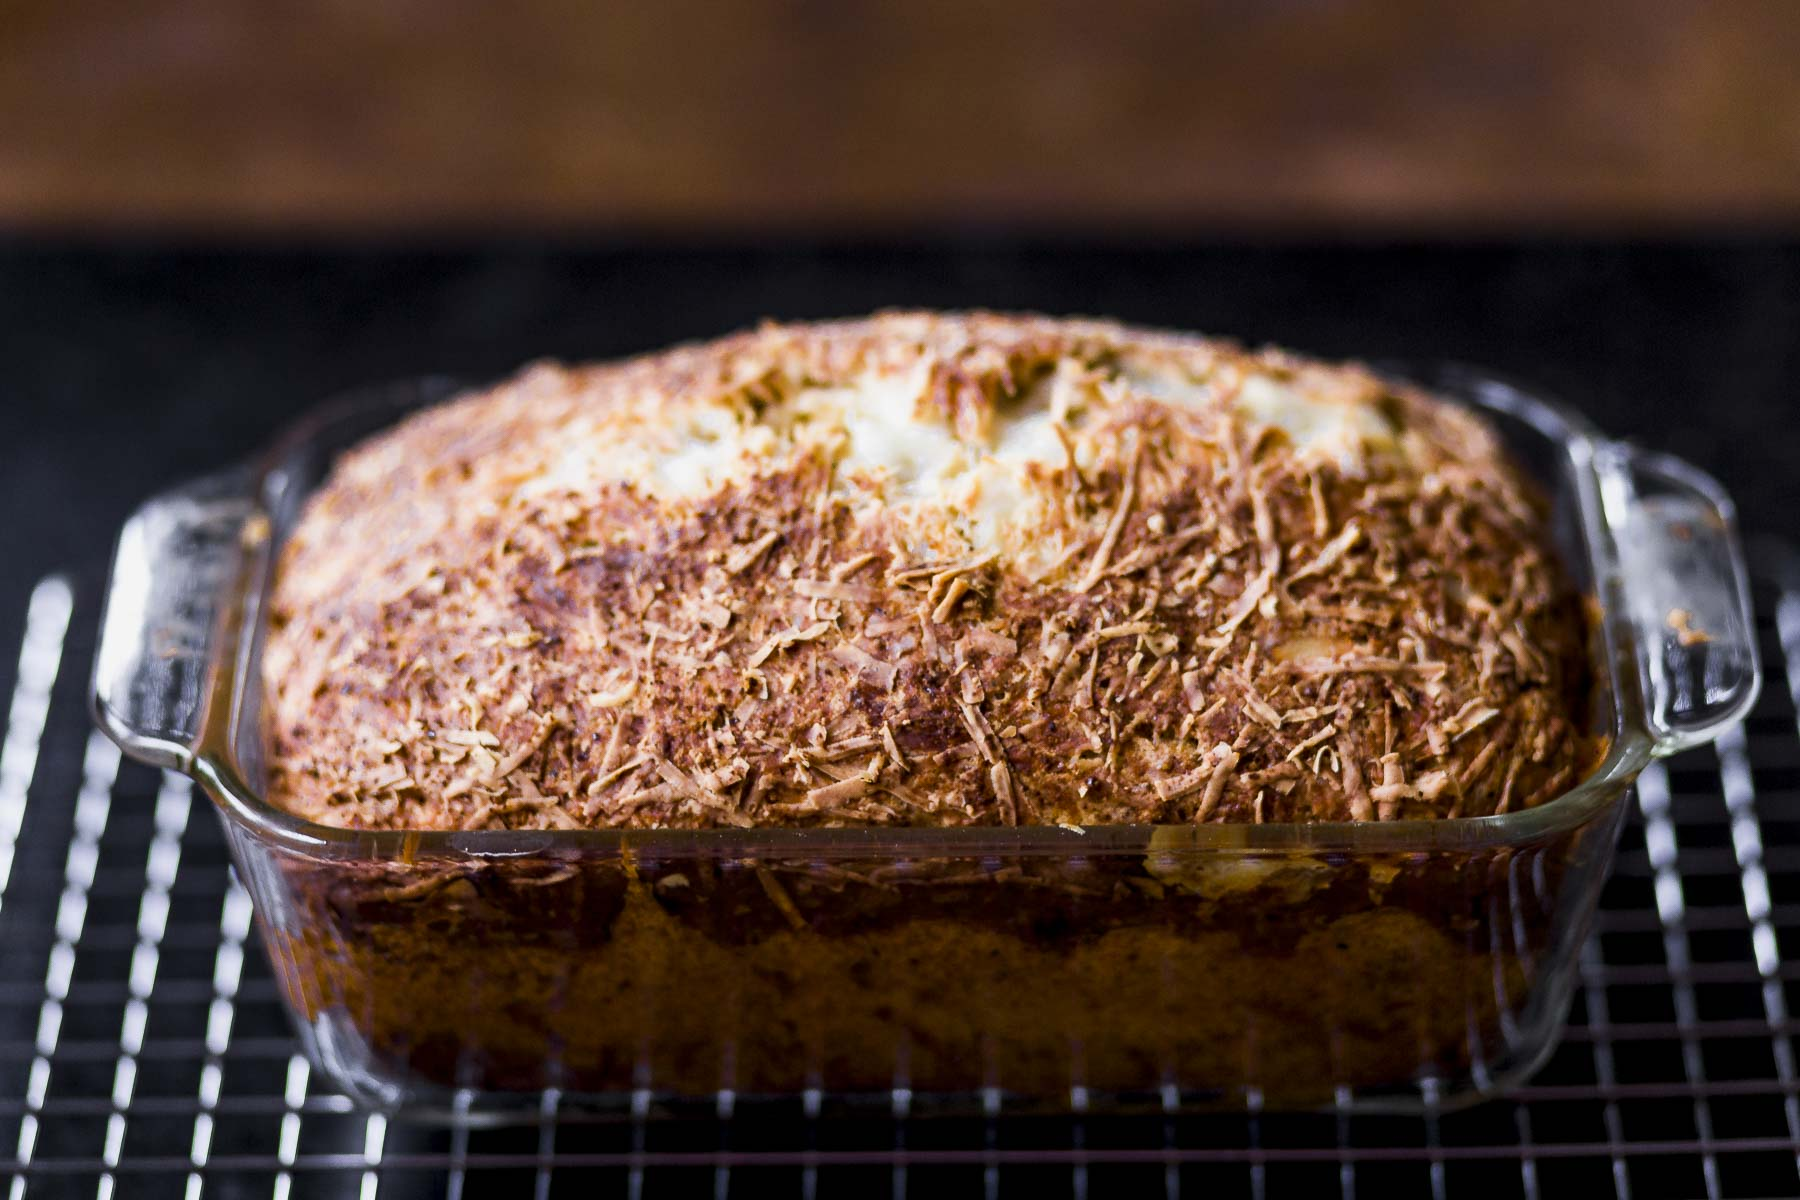 quick cheese bread with sharp cheddar and parmesan, deliciously golden and fresh from the oven